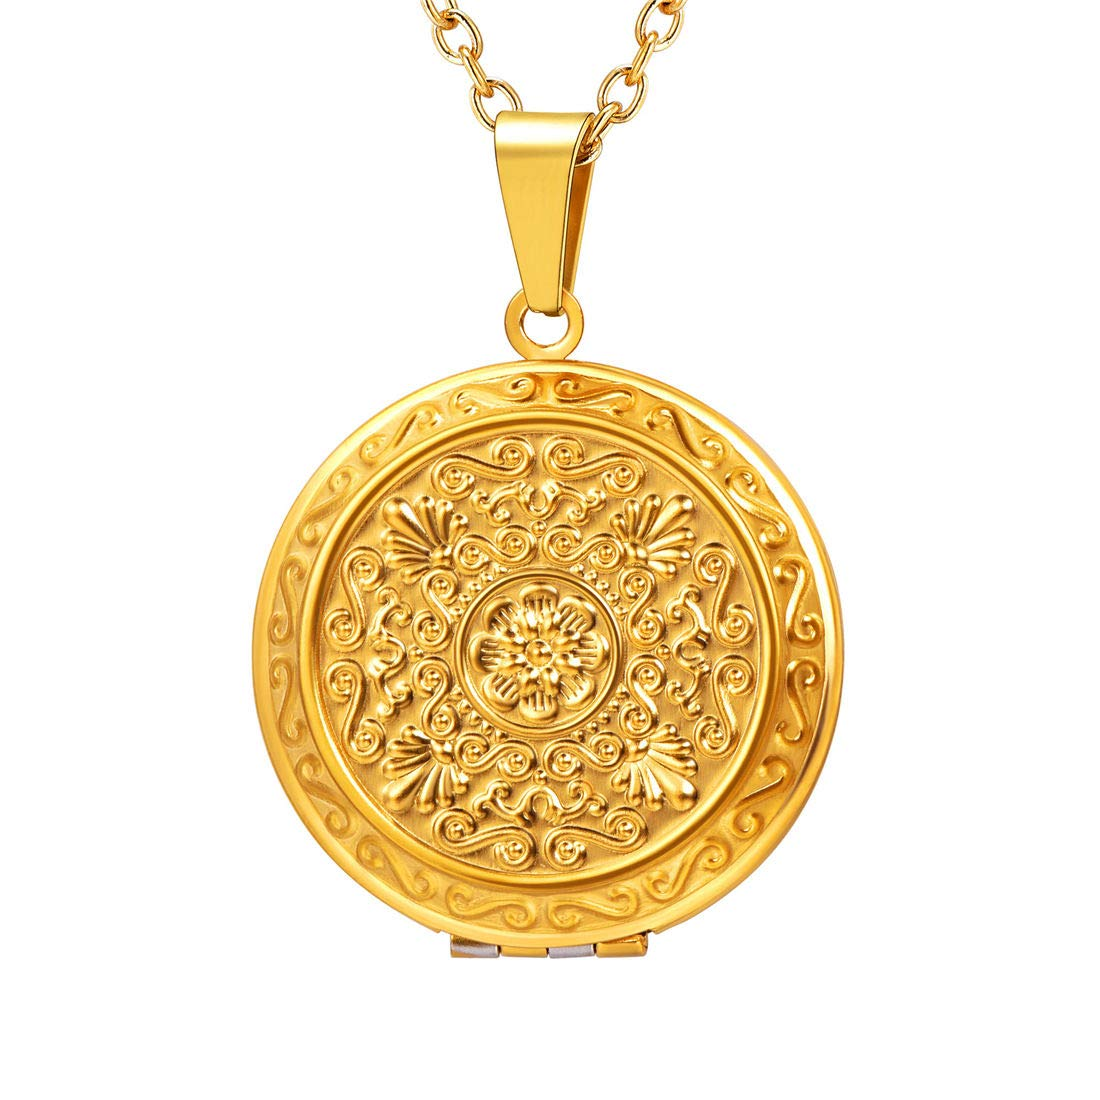 U7 Round Locket Pendant 18K Gold/Rose Gold Plated Rolo Chain Memorial Fashion Necklace for Women and Men, Hamsa Hand/Flower/ Egyptian Cross Engrved Style U7 Jewelry U7 P3516K